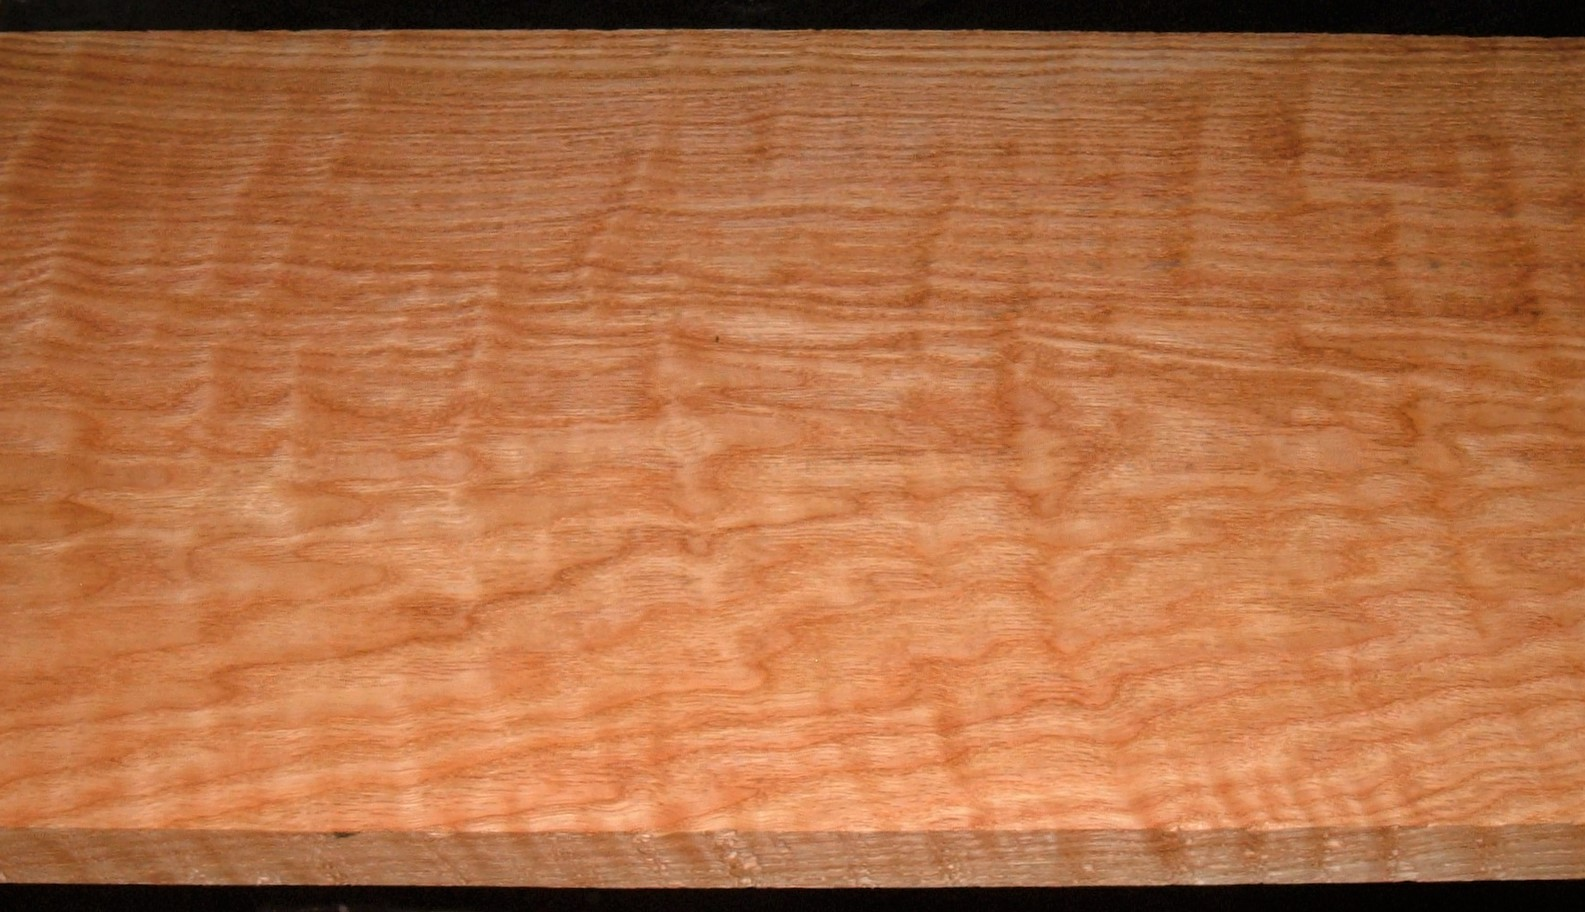 RO2102-21J, Curly Figured Tiger Red Oak, 1-1/8x13-3/8x87